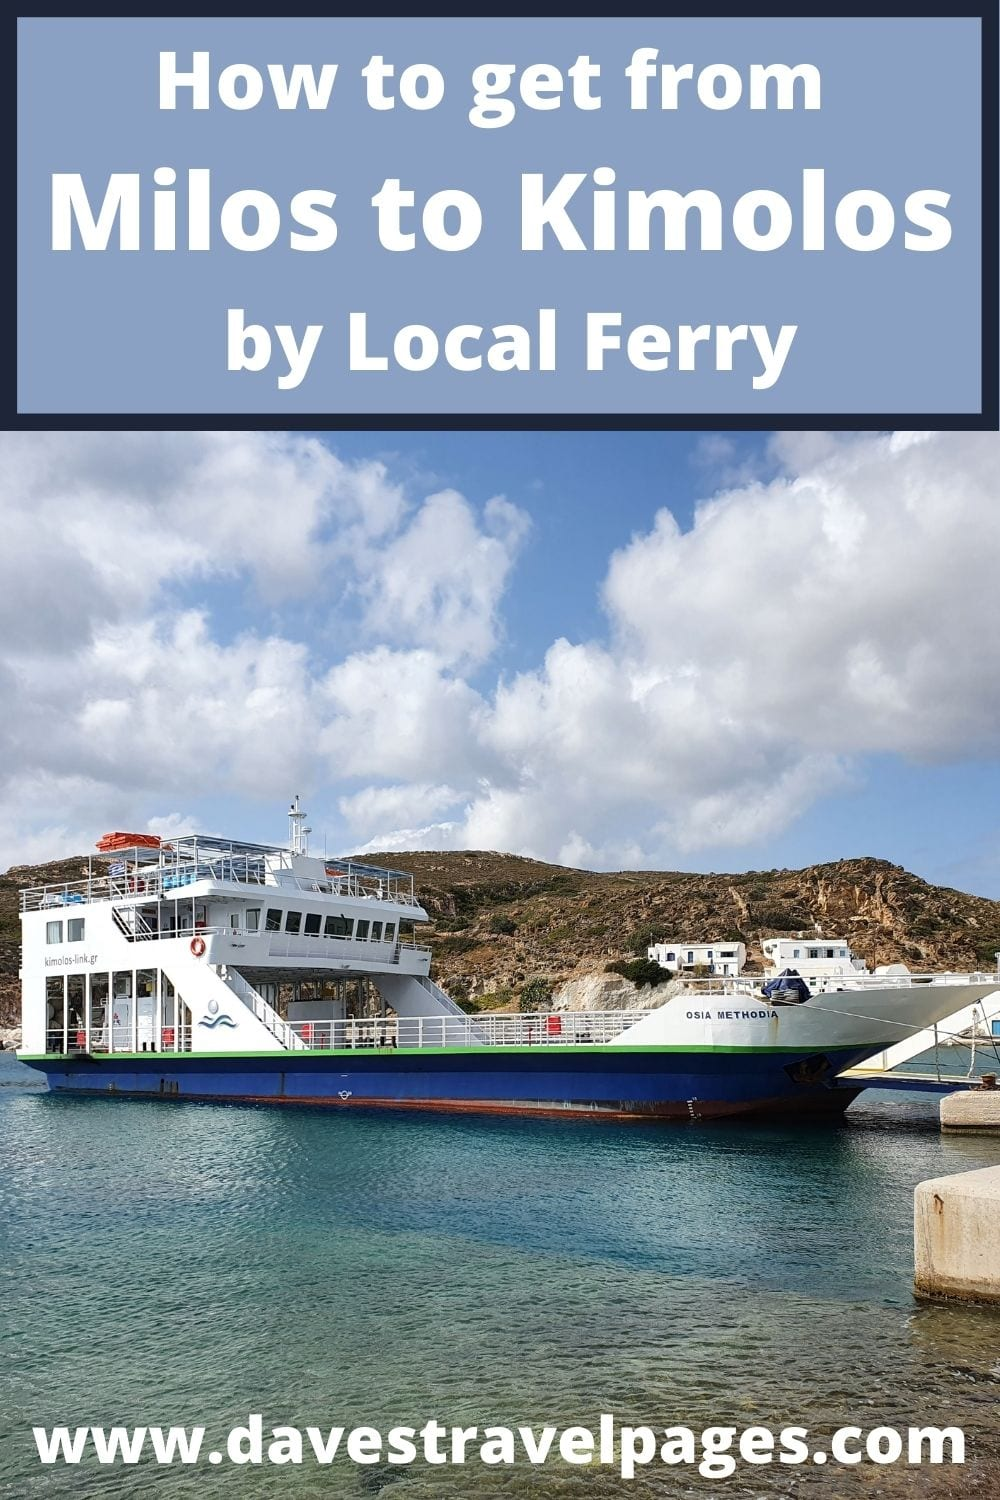 How to travel from Milos to Kimolos on the local ferry in Greece